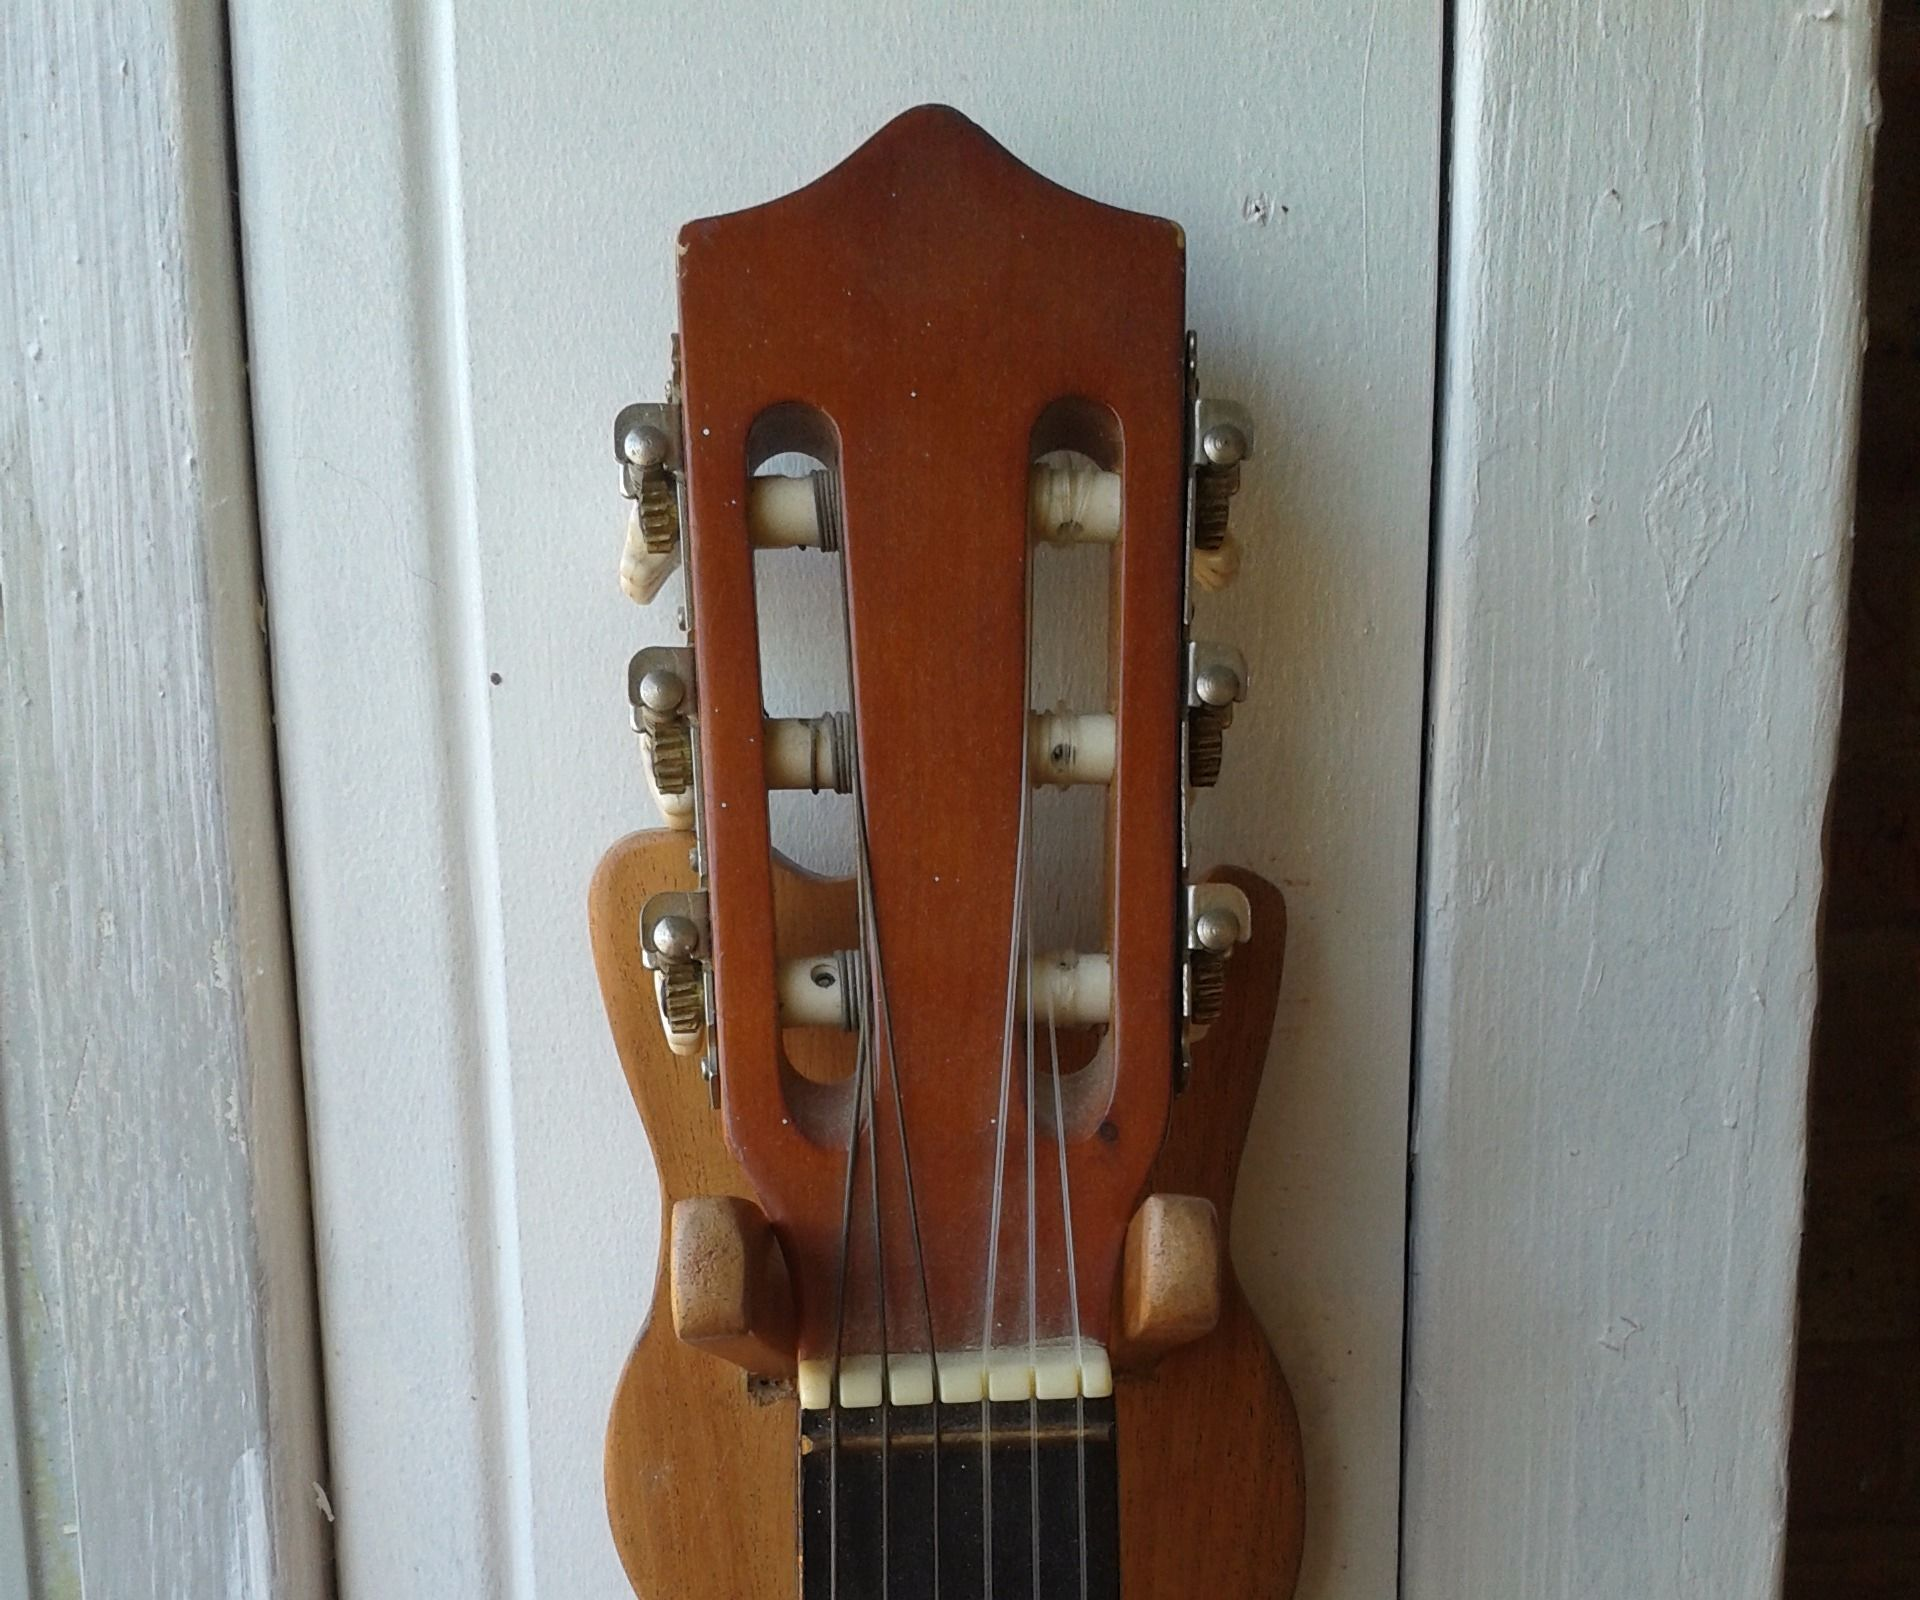 Diy Guitar Wall Hanger Wood Work 8 Steps With Pictures